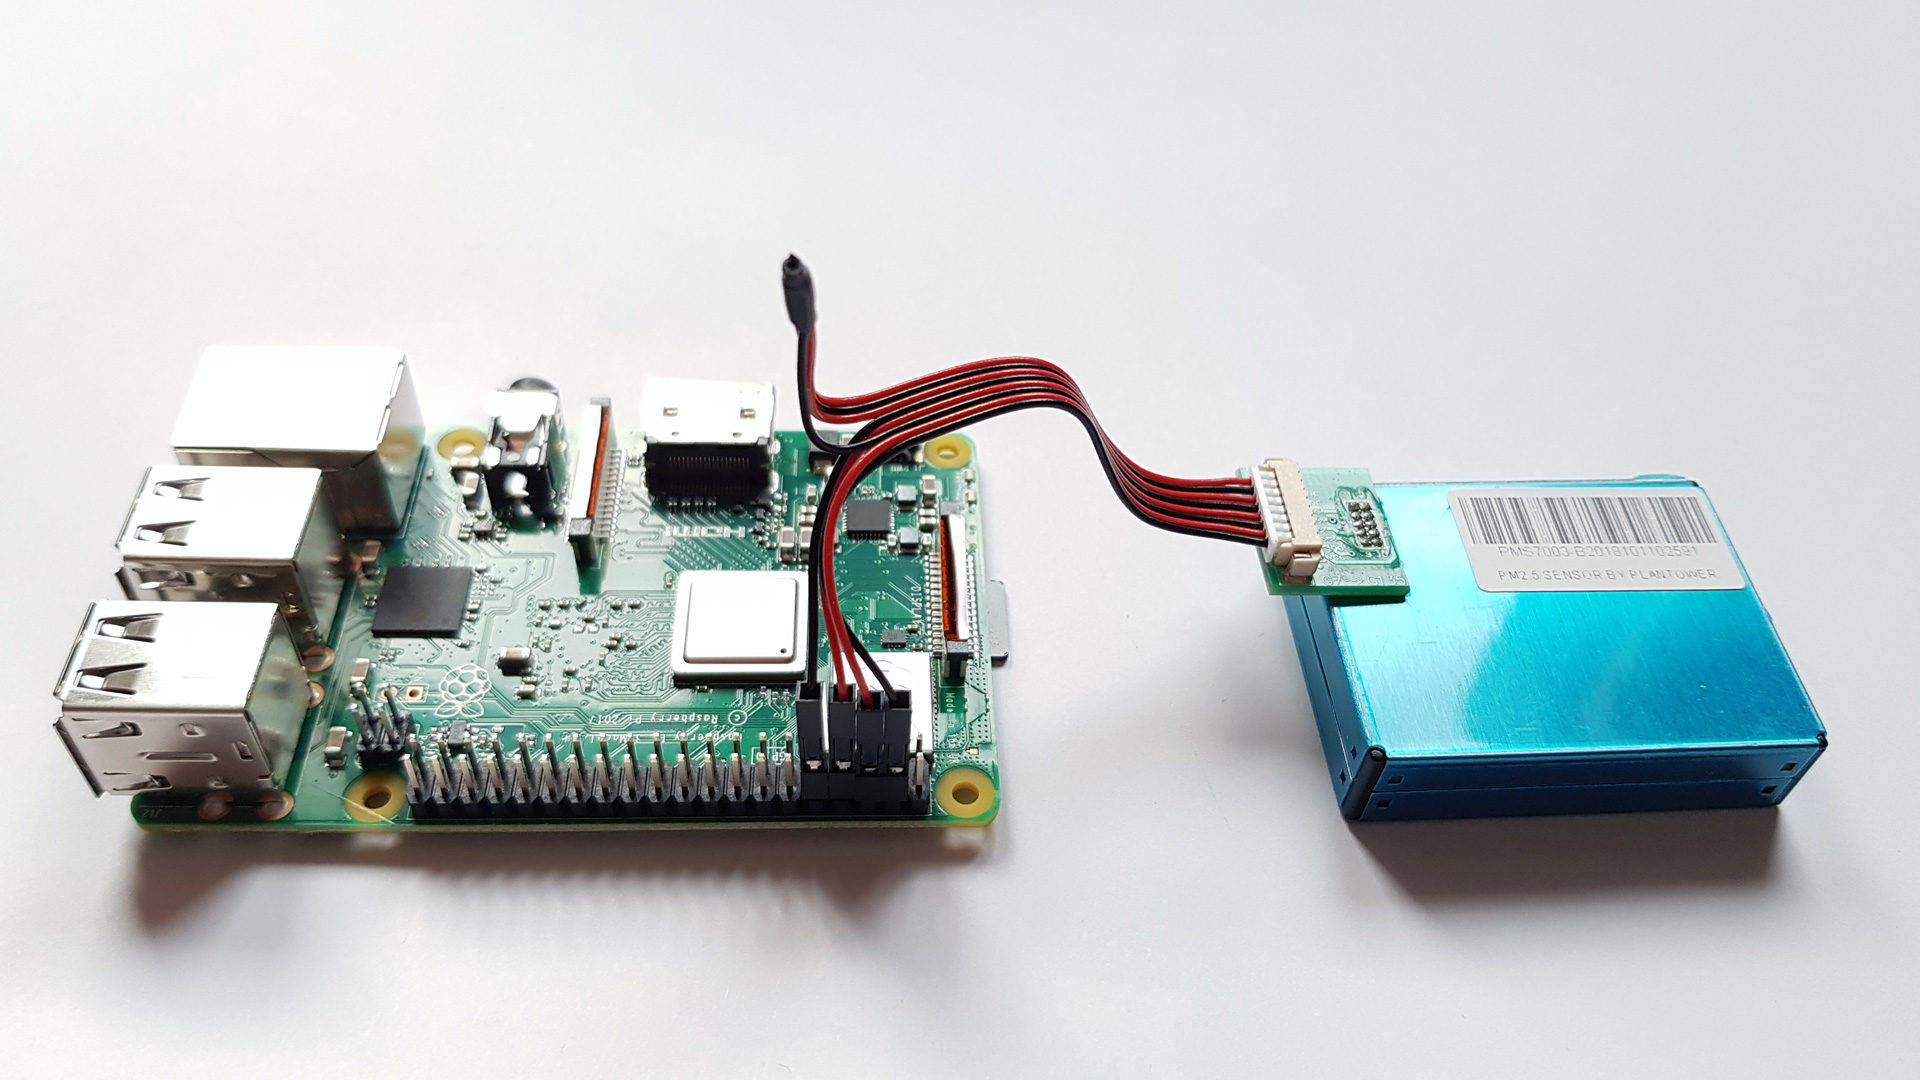 PMS7003 connected to Raspberry Pi